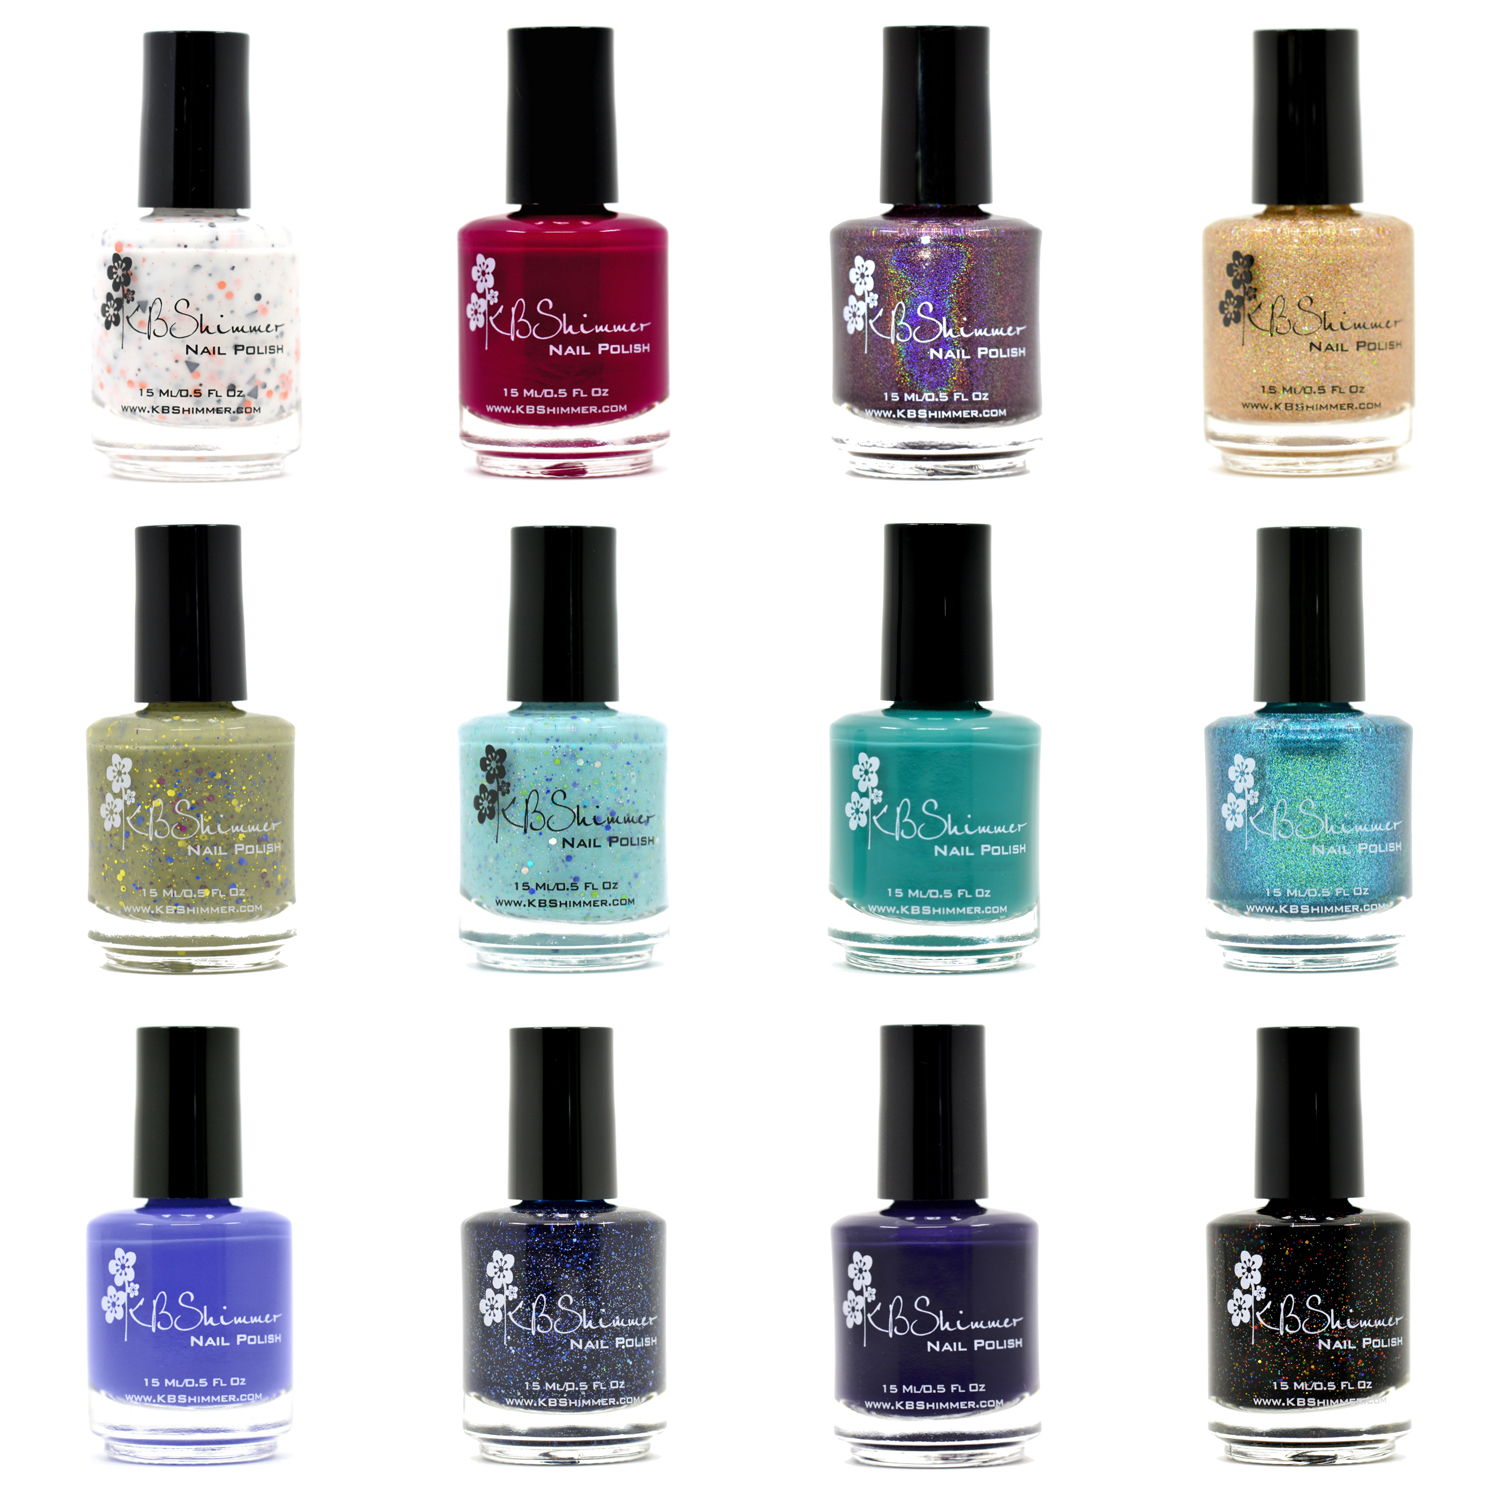 KBShimmer Fall 2015 Collection via @chalkboardnails